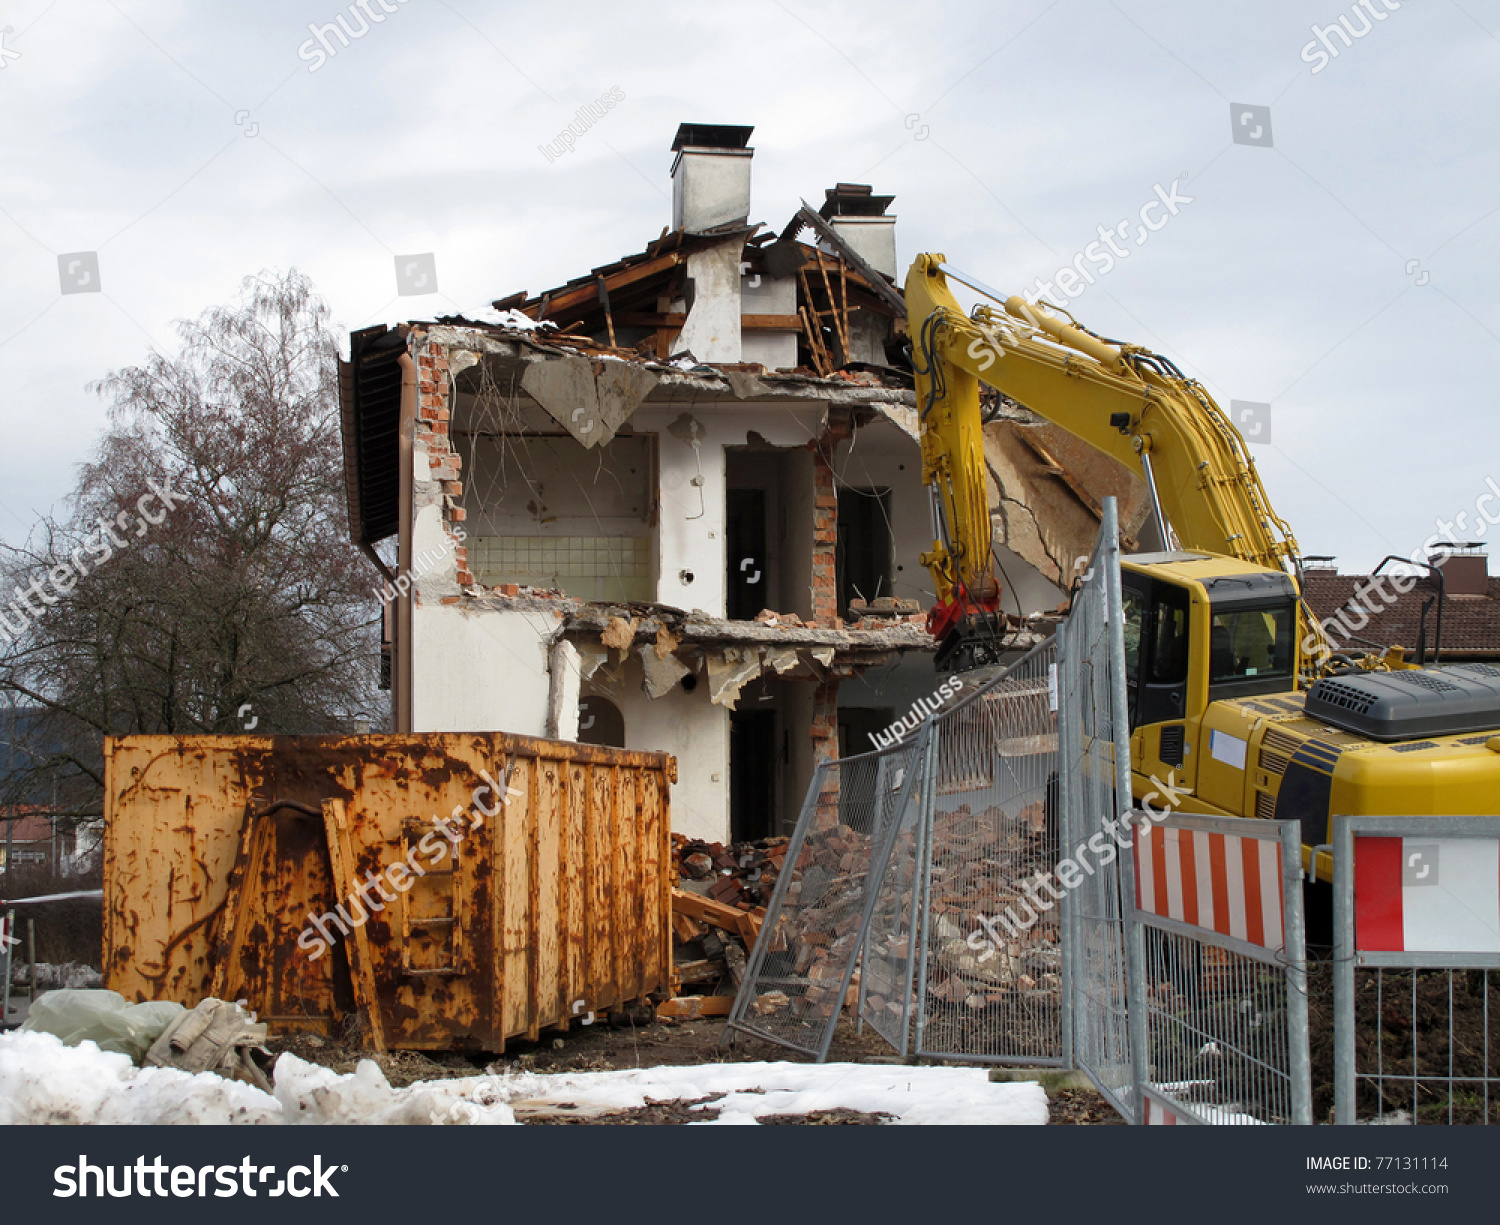 construction essays building demolition Free essay: sustainability sustainable development meets the needs of   28% of landfill material from construction and demolition waste  buildings.